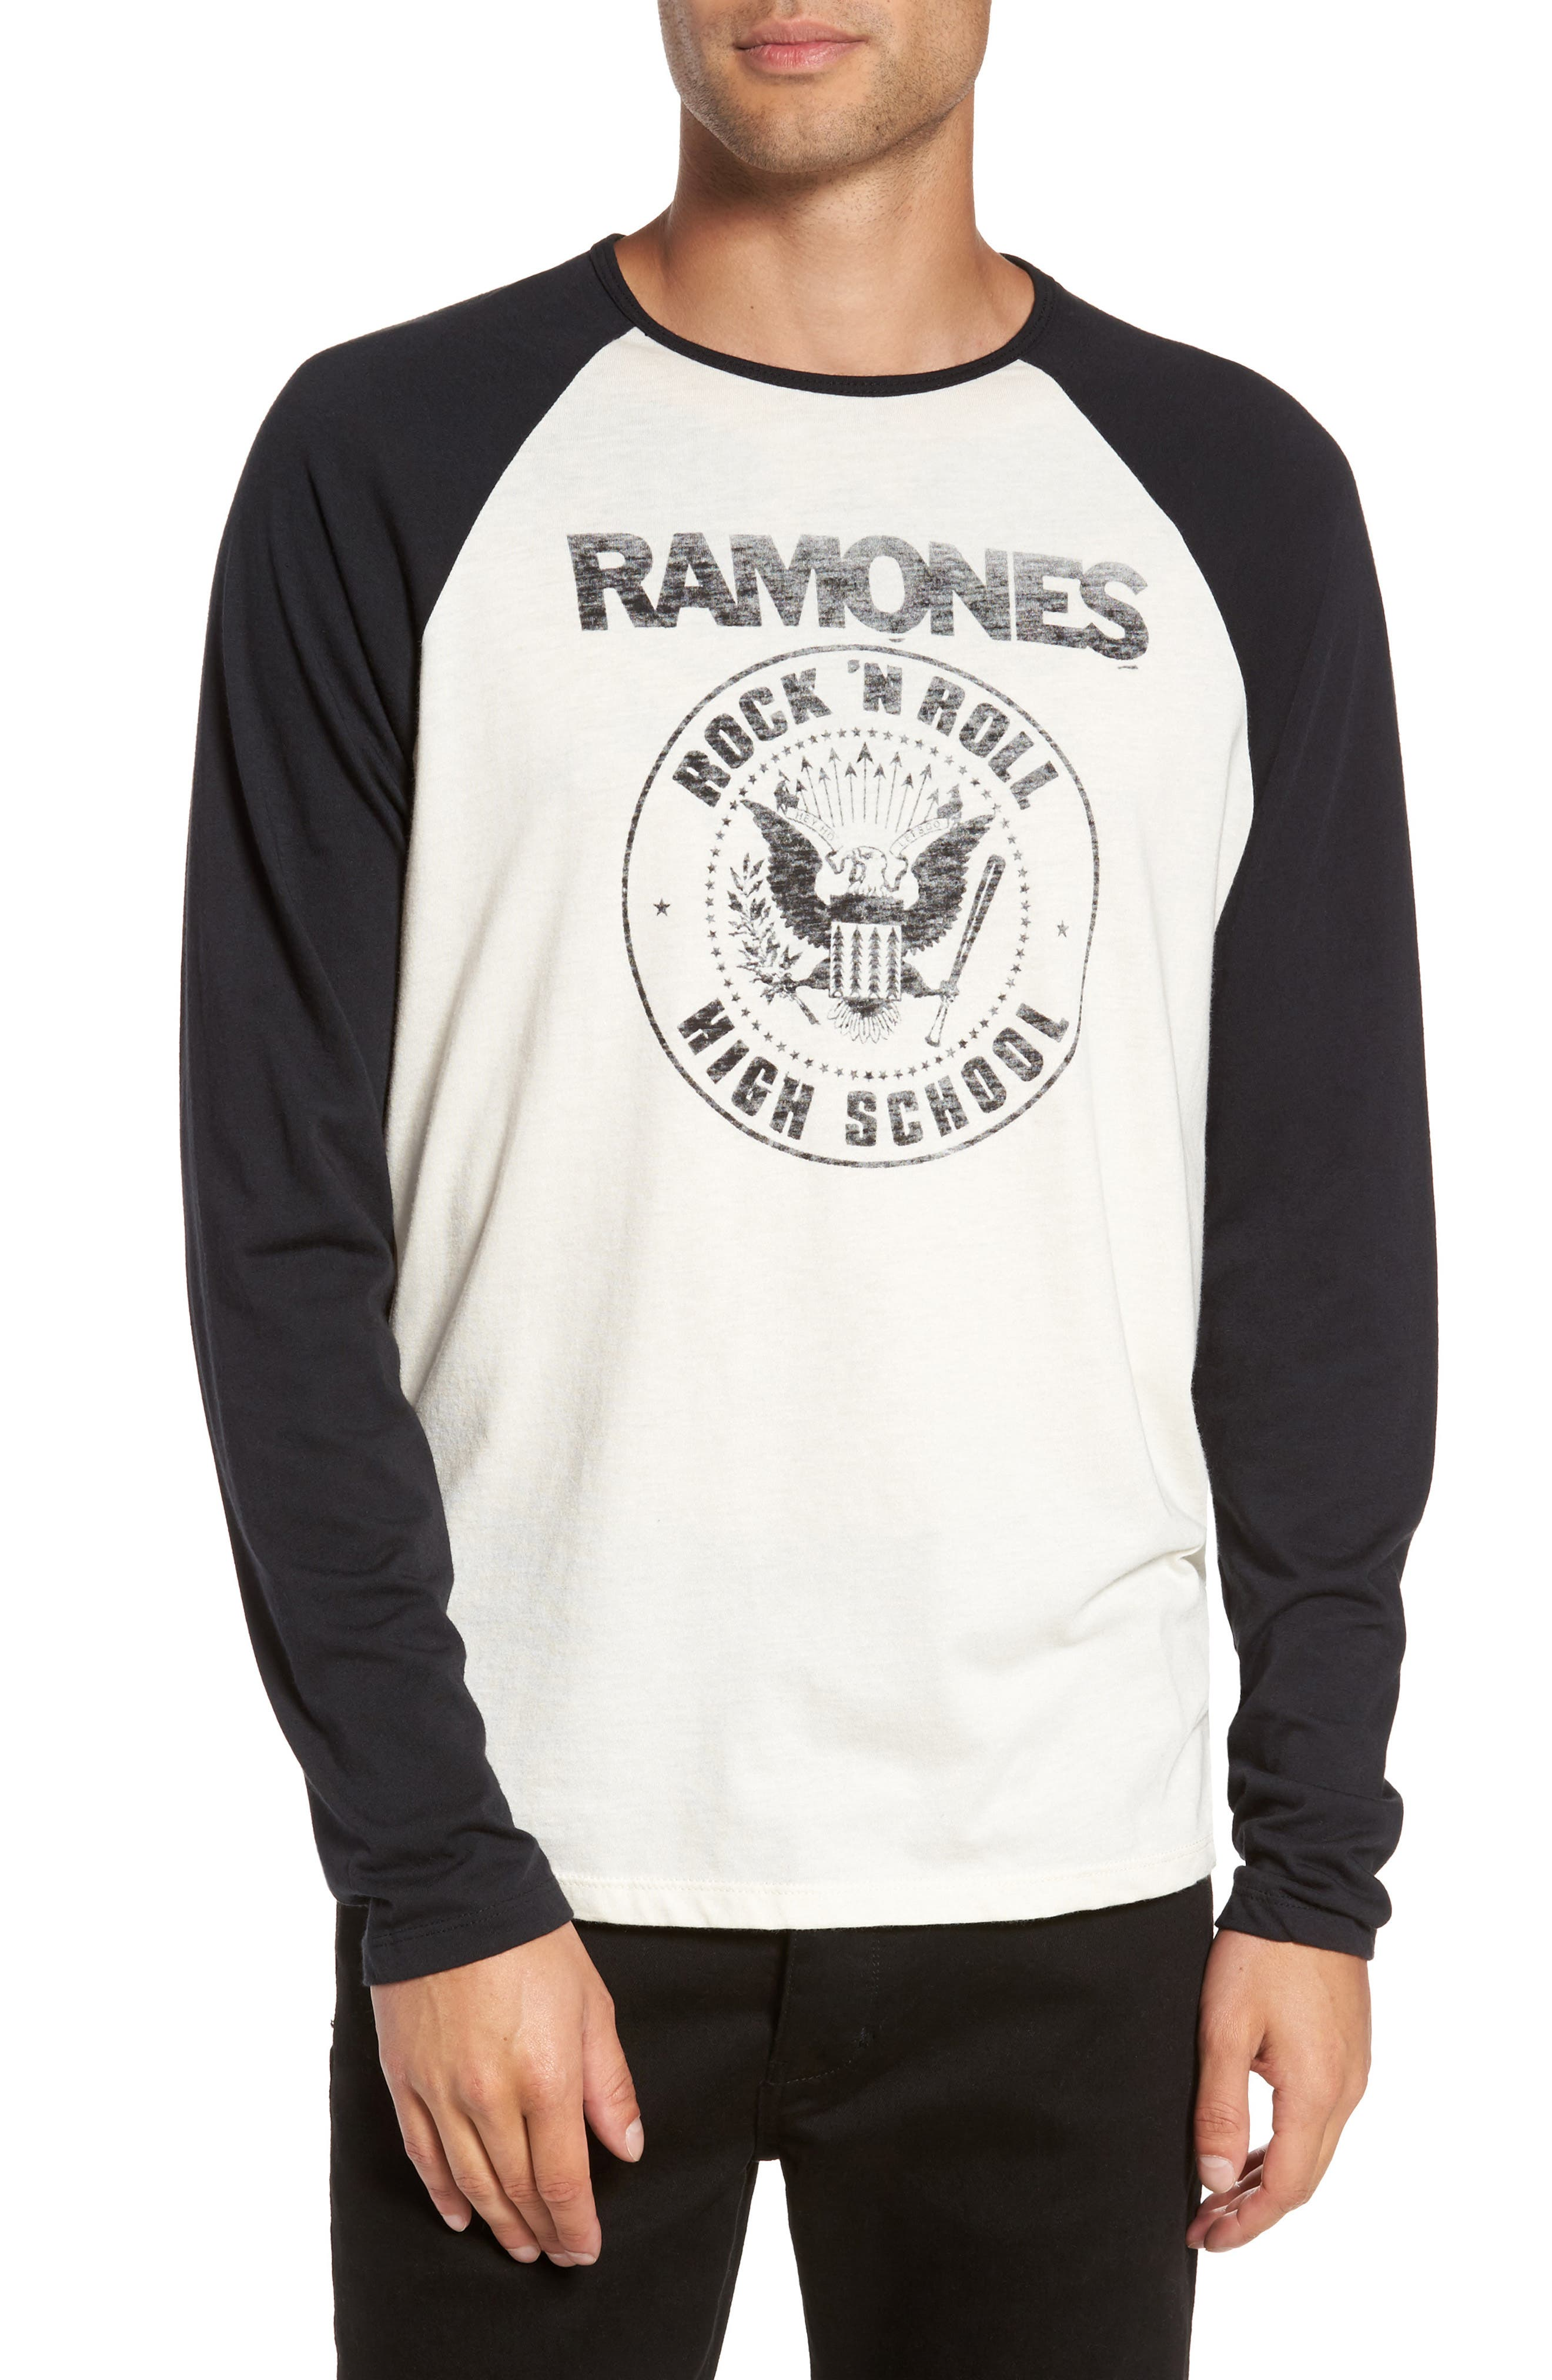 Alternate Image 1 Selected - John Varvatos Star USA Ramones Rock N Roll High School Graphic T-Shirt